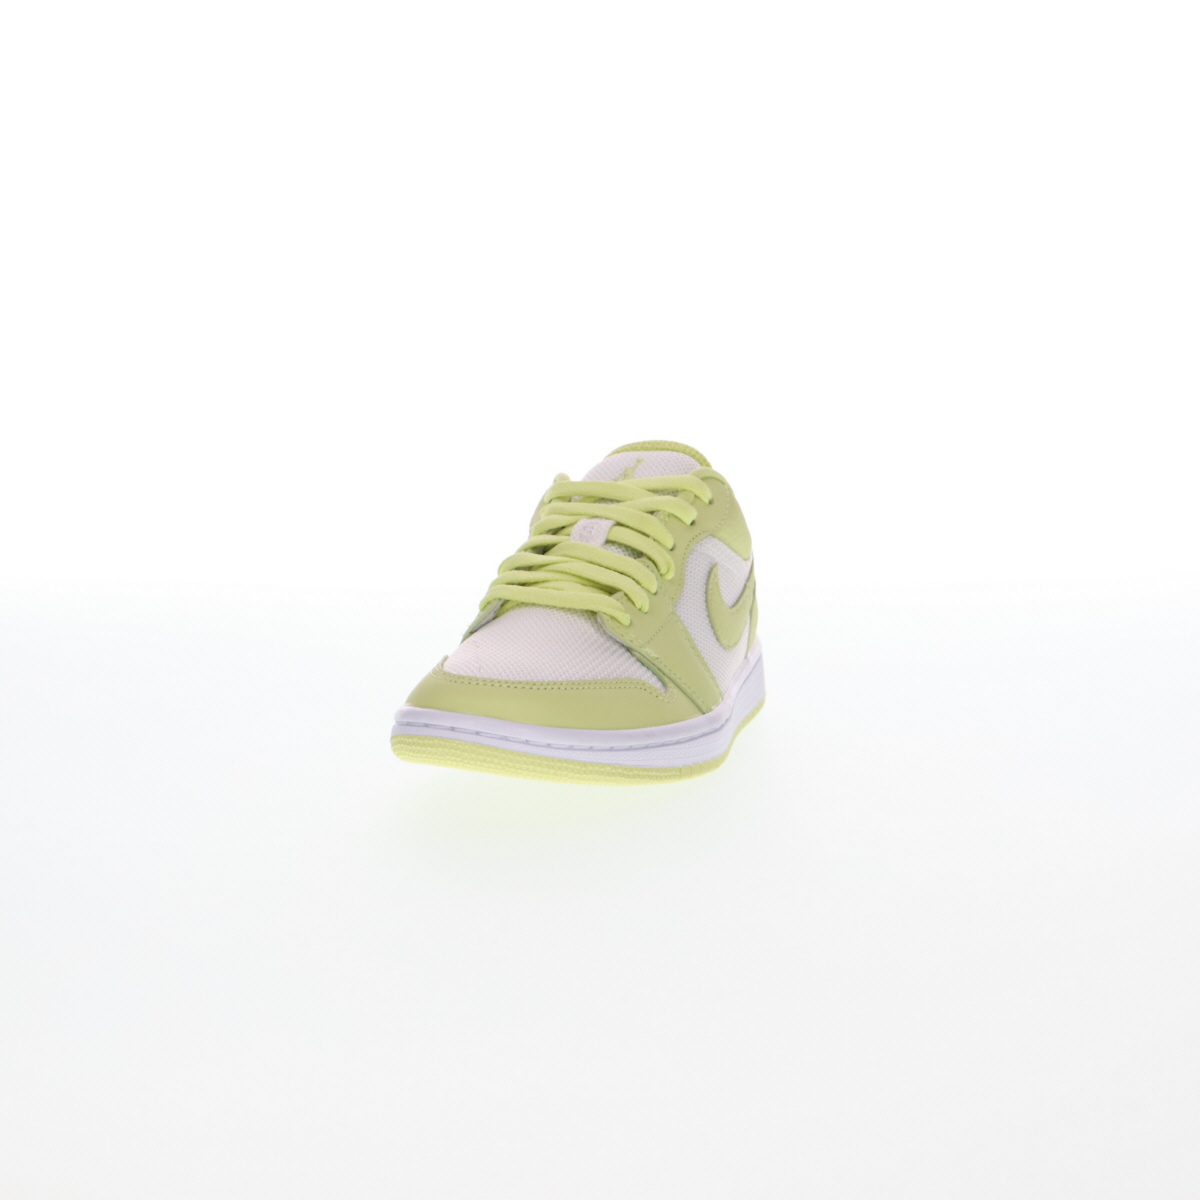 nike air trainer dunk low cool grey women images